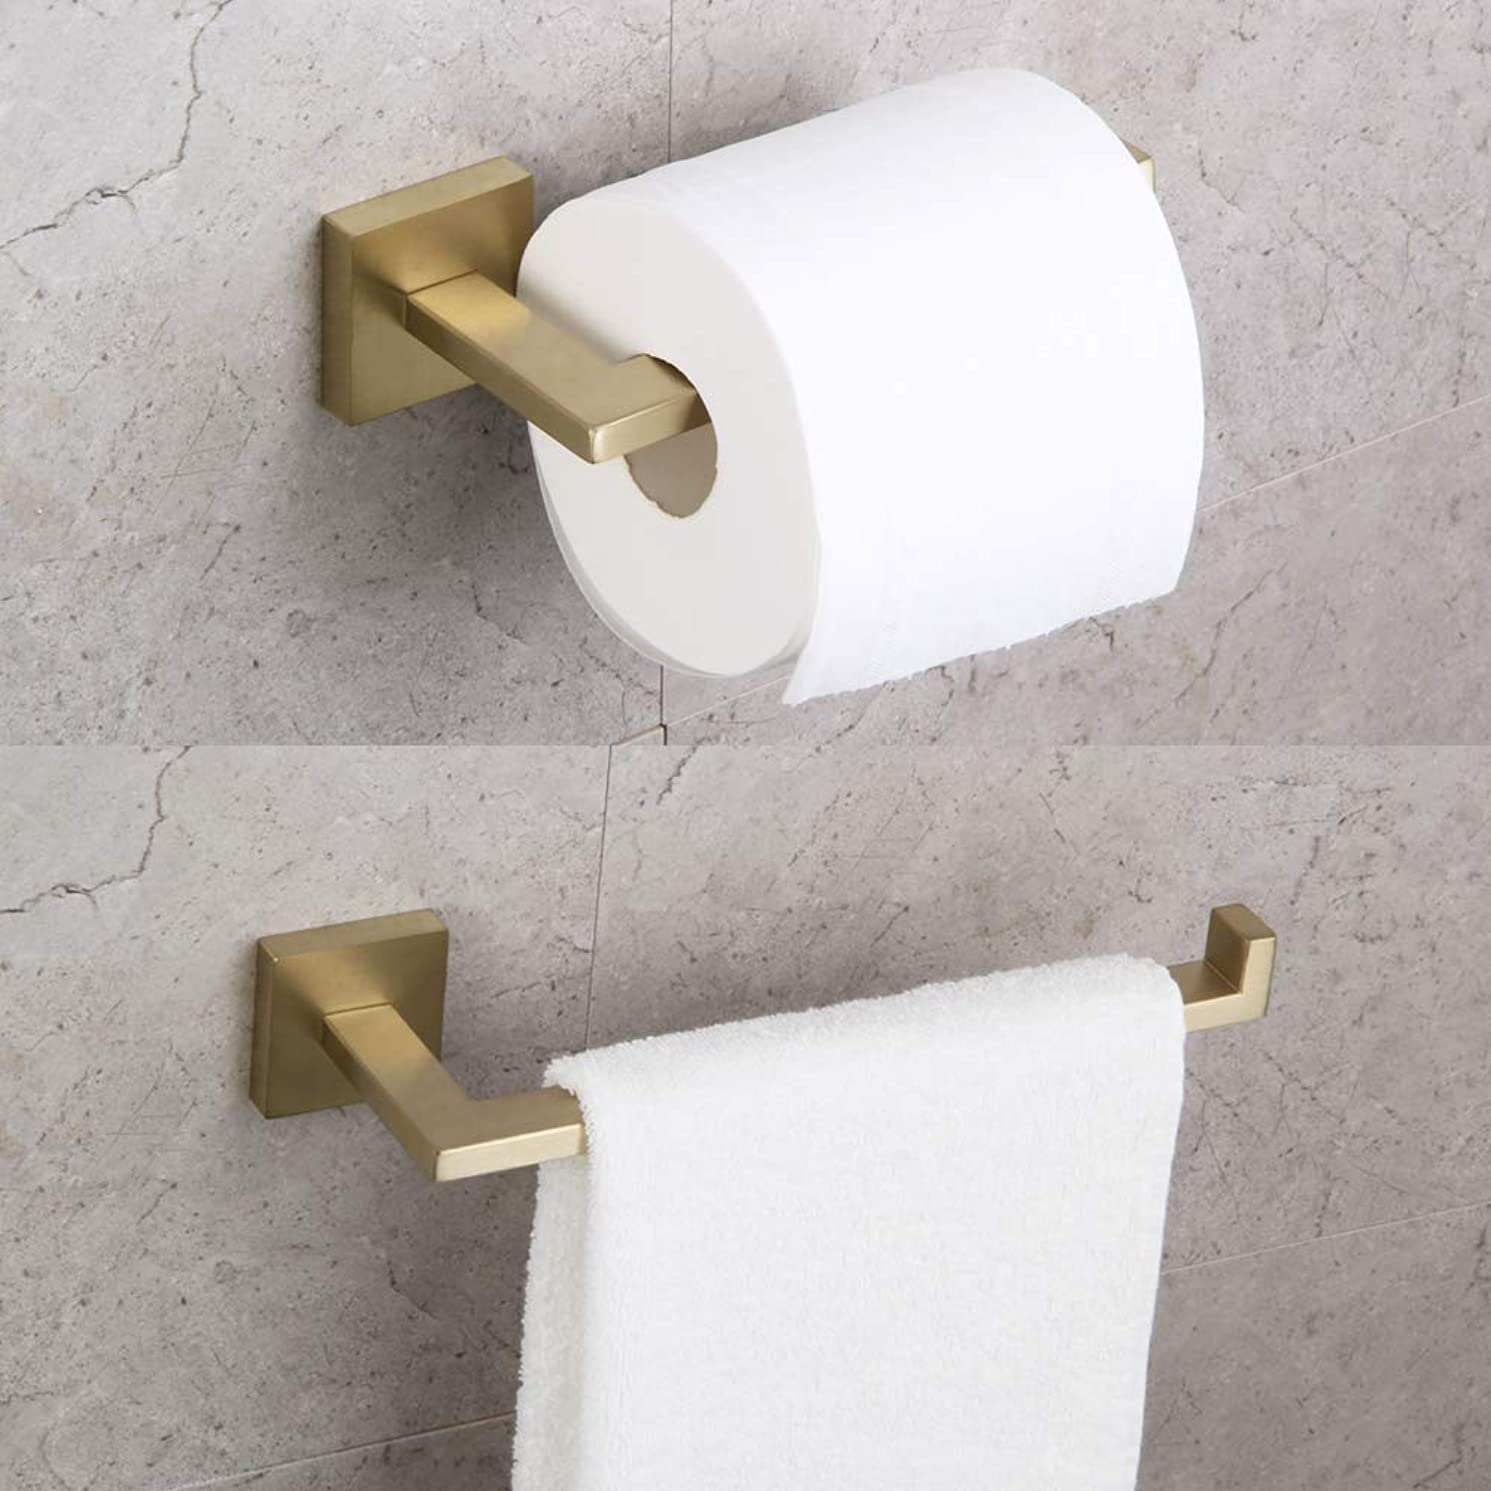 Bathroom 2-Piece Hardware Set Toilet Paper Holder and Towel Ring Wall Mounted Brushed PVD Zirconium Gold Finish